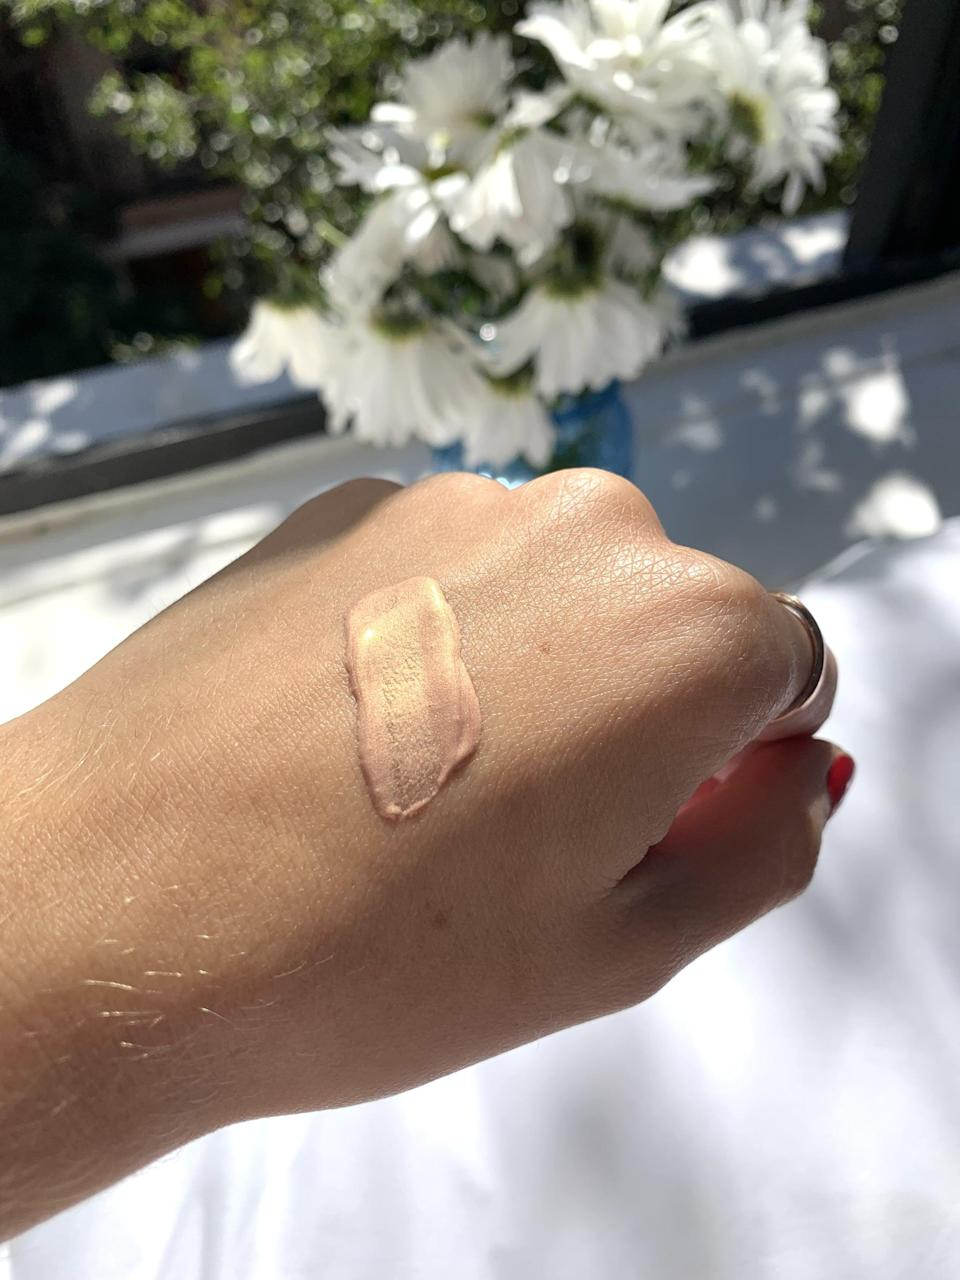 <p>The shade matched my skin tone, and the product applied really well. Even better, one pump goes a long way, so be sure to put it on something (like your hand or a brush) before applying it to your face. The texture is a little more watery than I expected, but overall it has a nice consistency.</p>